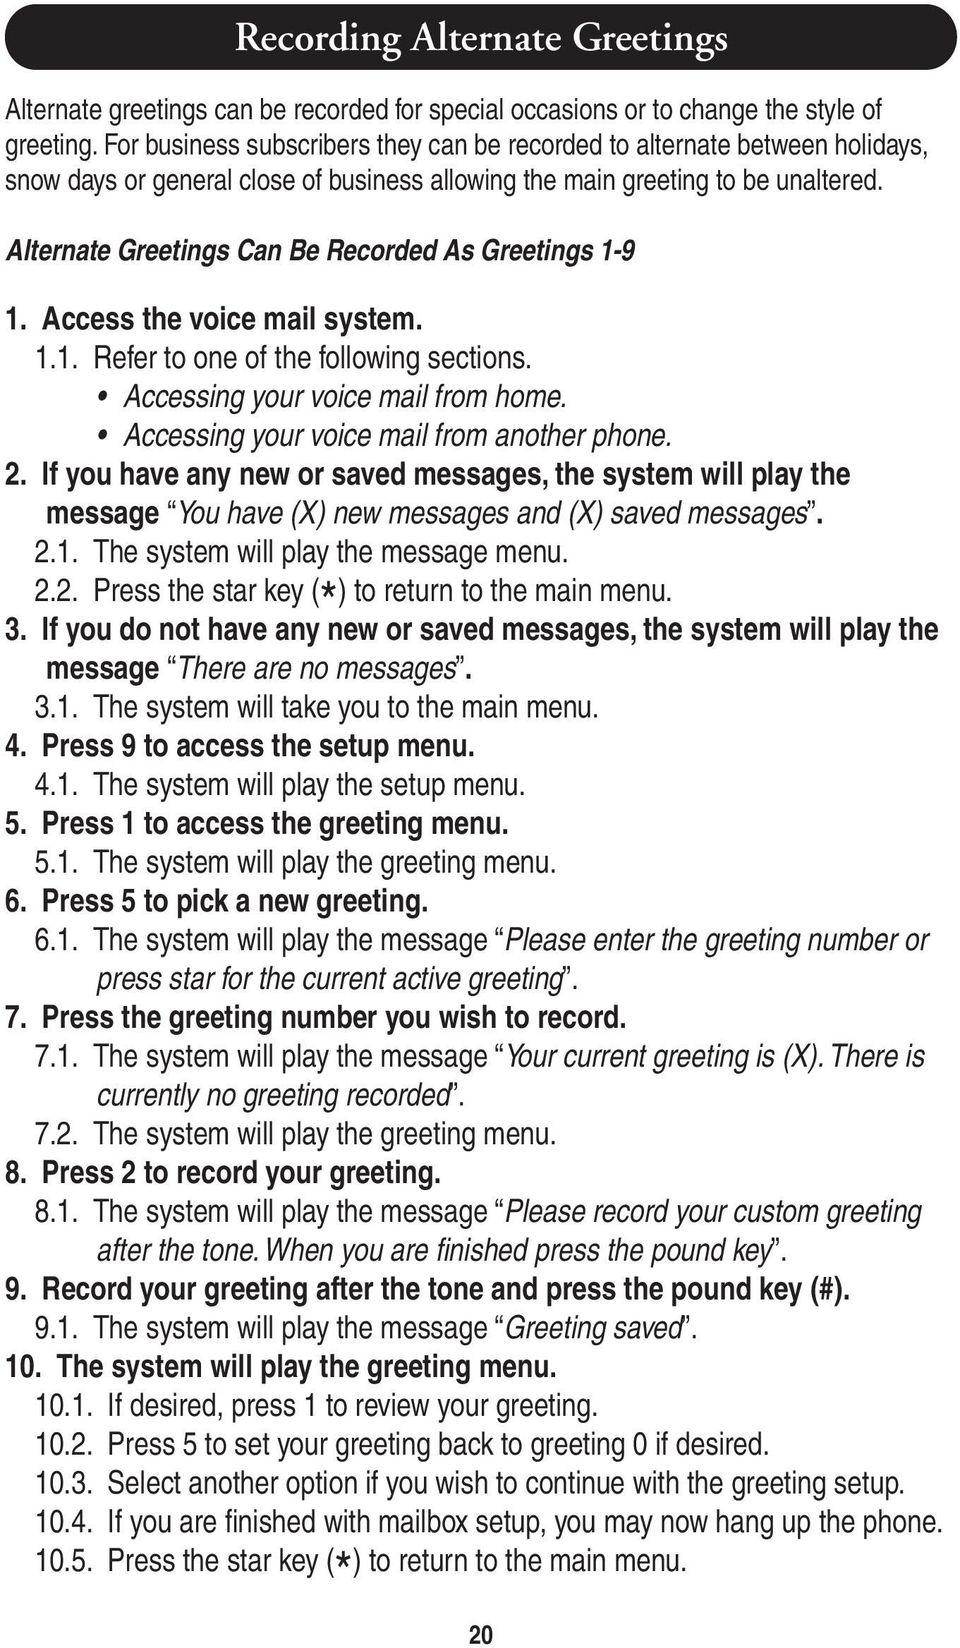 Alternate Greetings Can Be Recorded As Greetings 1-9 Access the voice mail system. Refer to one of the following sections. Accessing your voice mail from home.